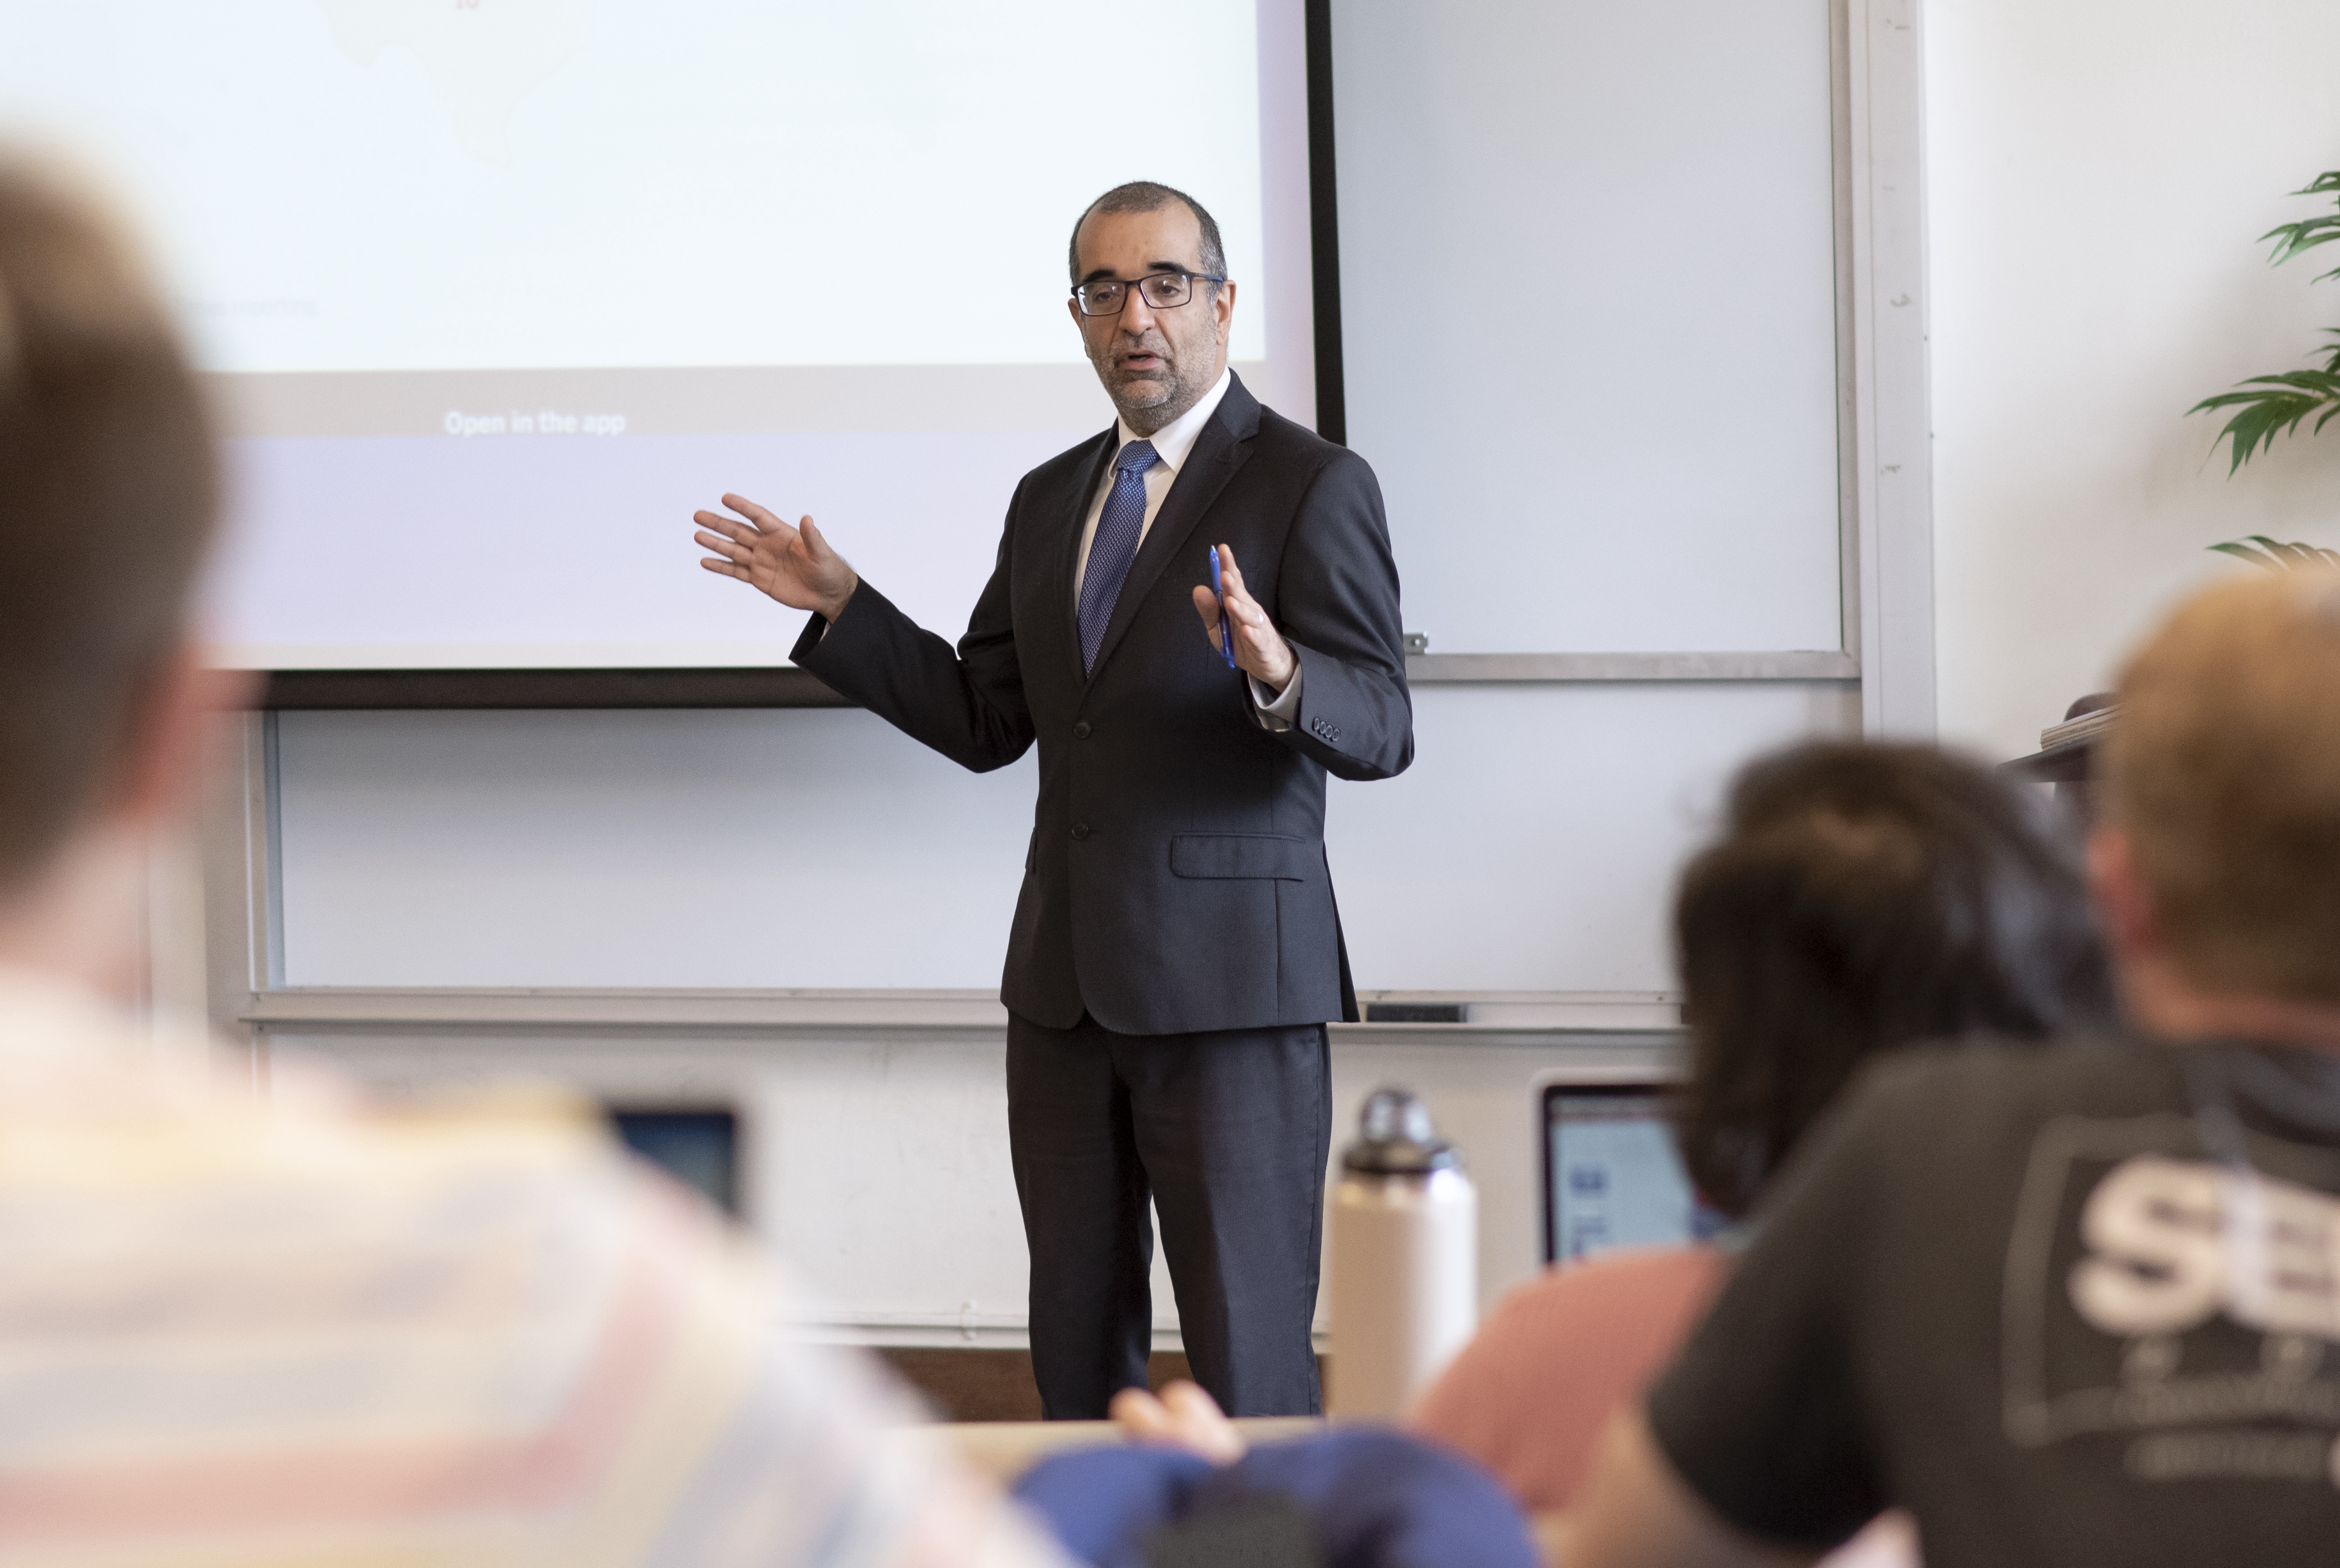 Marco Aponte Moreno, Associate Professor of Management, Saint Mary's College of California, School of Economics and Business Administration, Undergraduate, Graduate Business